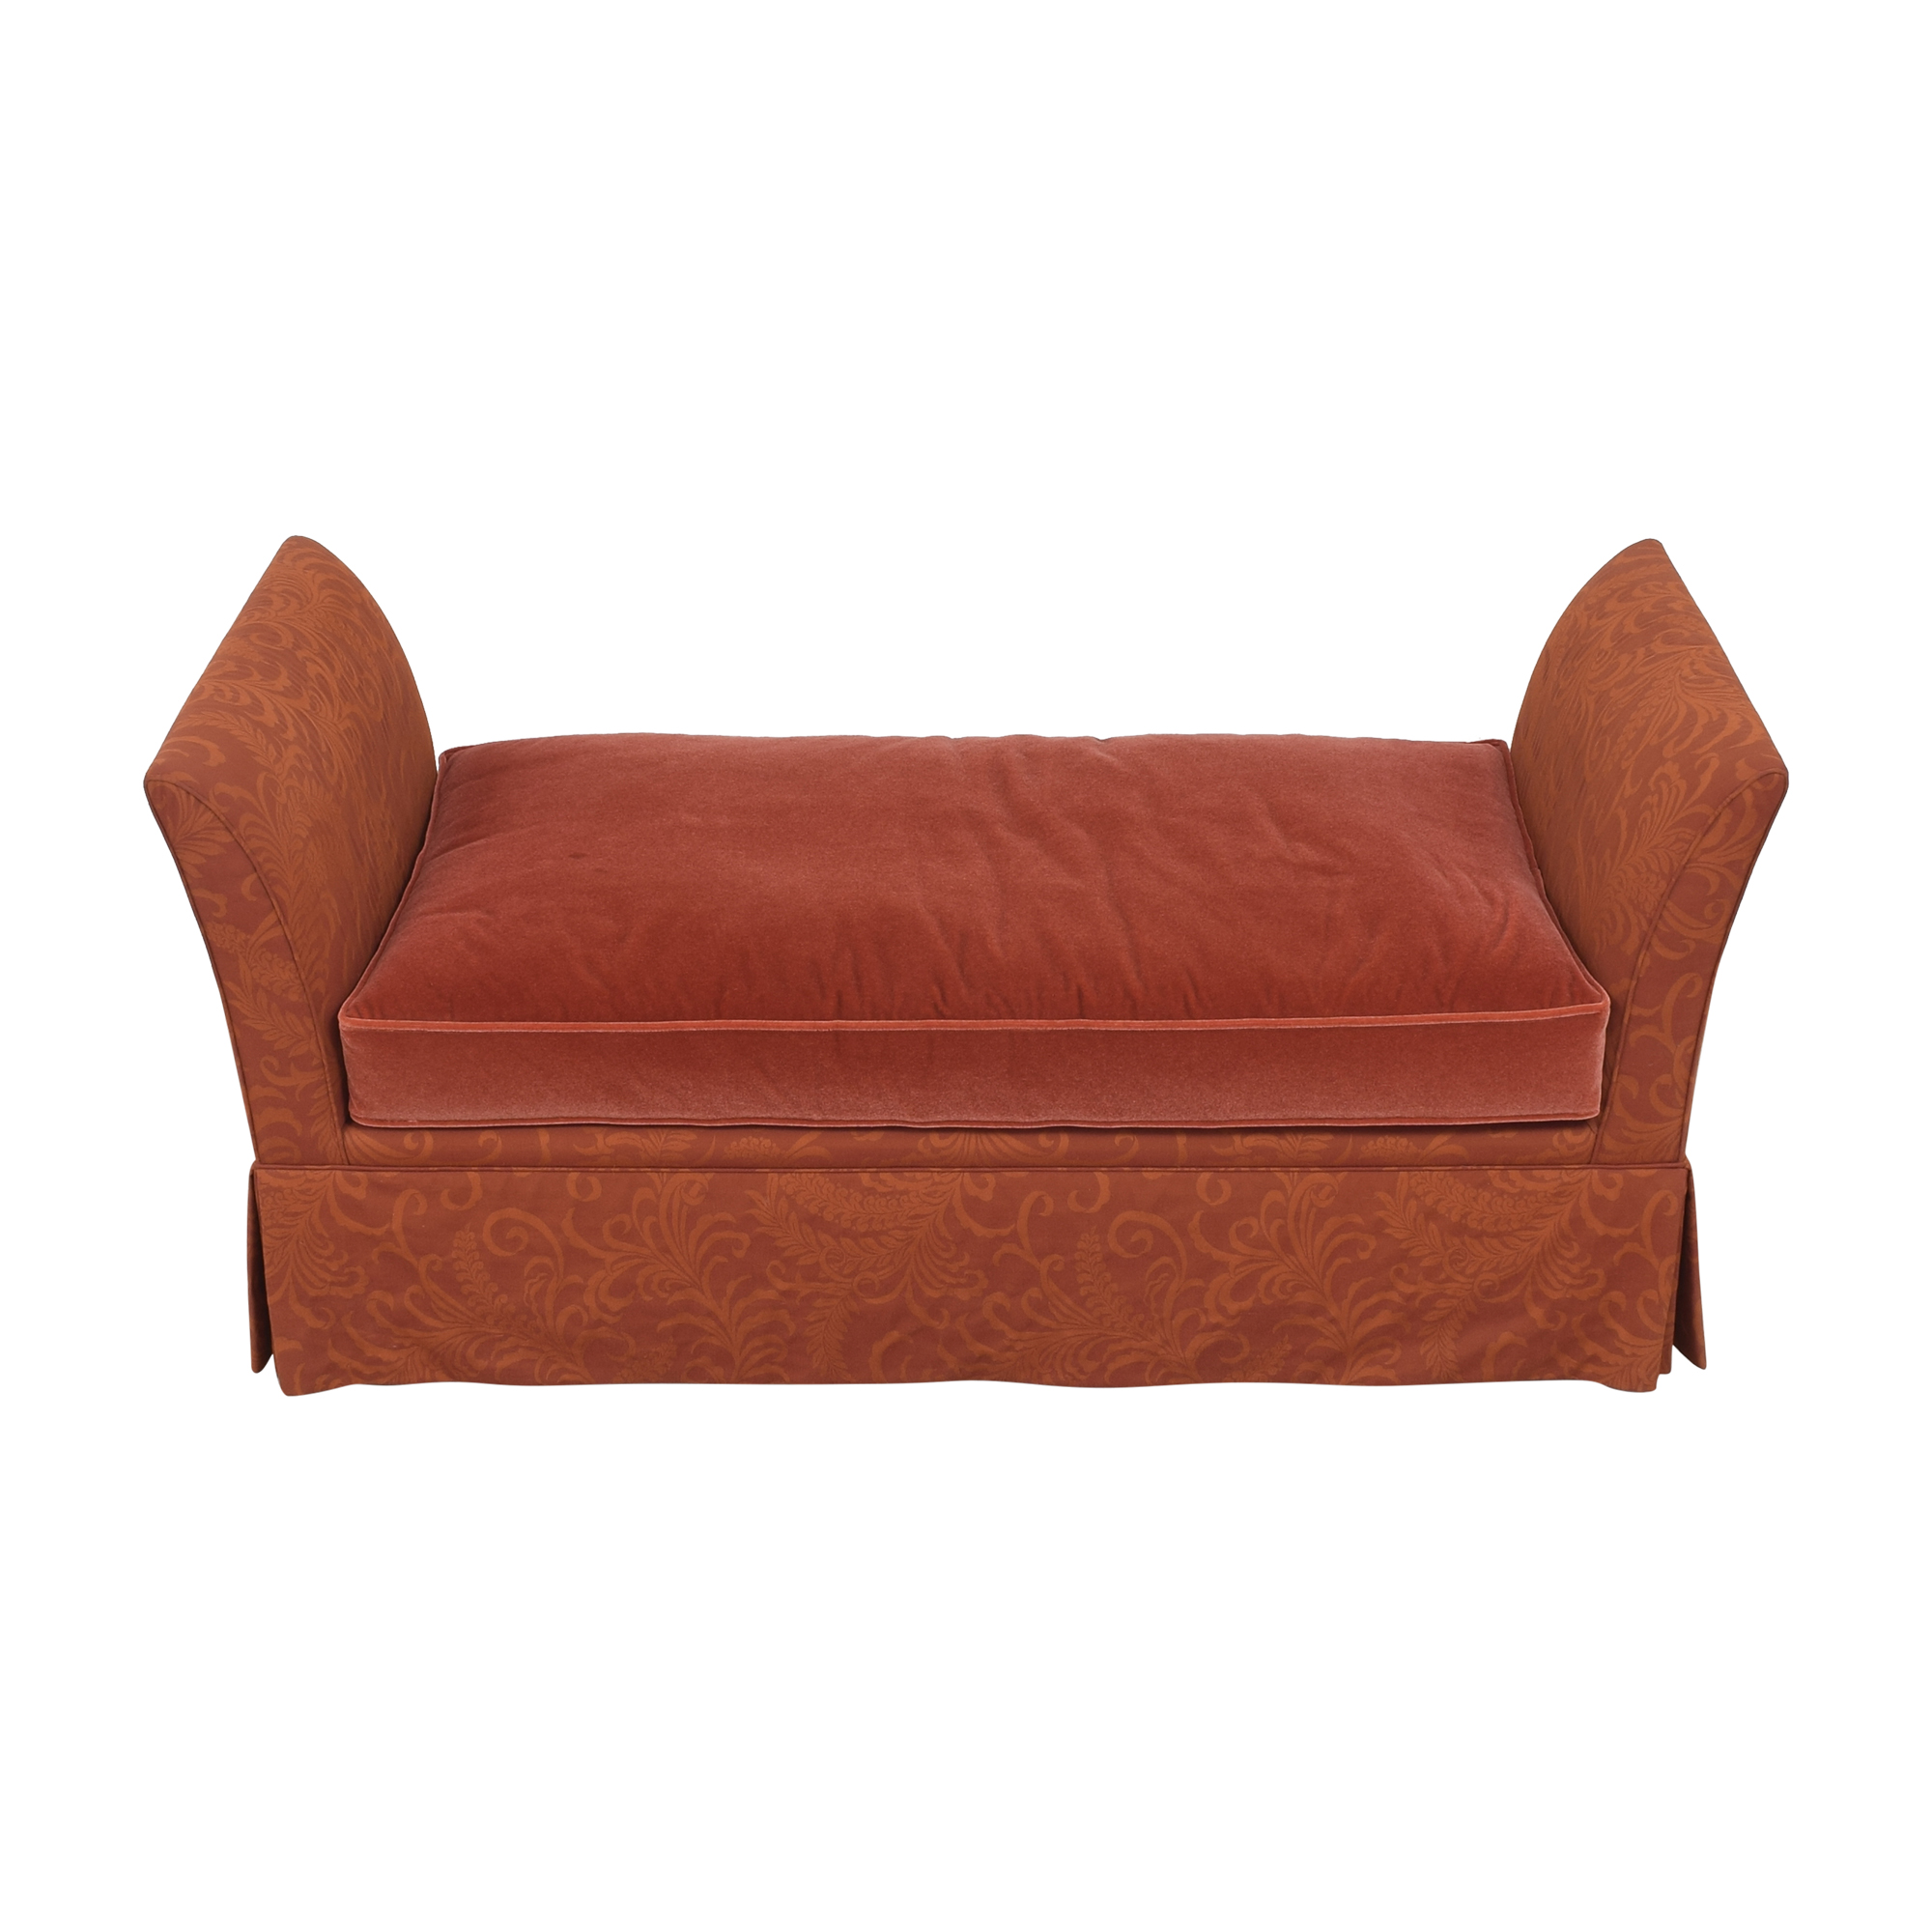 buy Lee Industries Skirted Daybed with Pillows Lee Industries